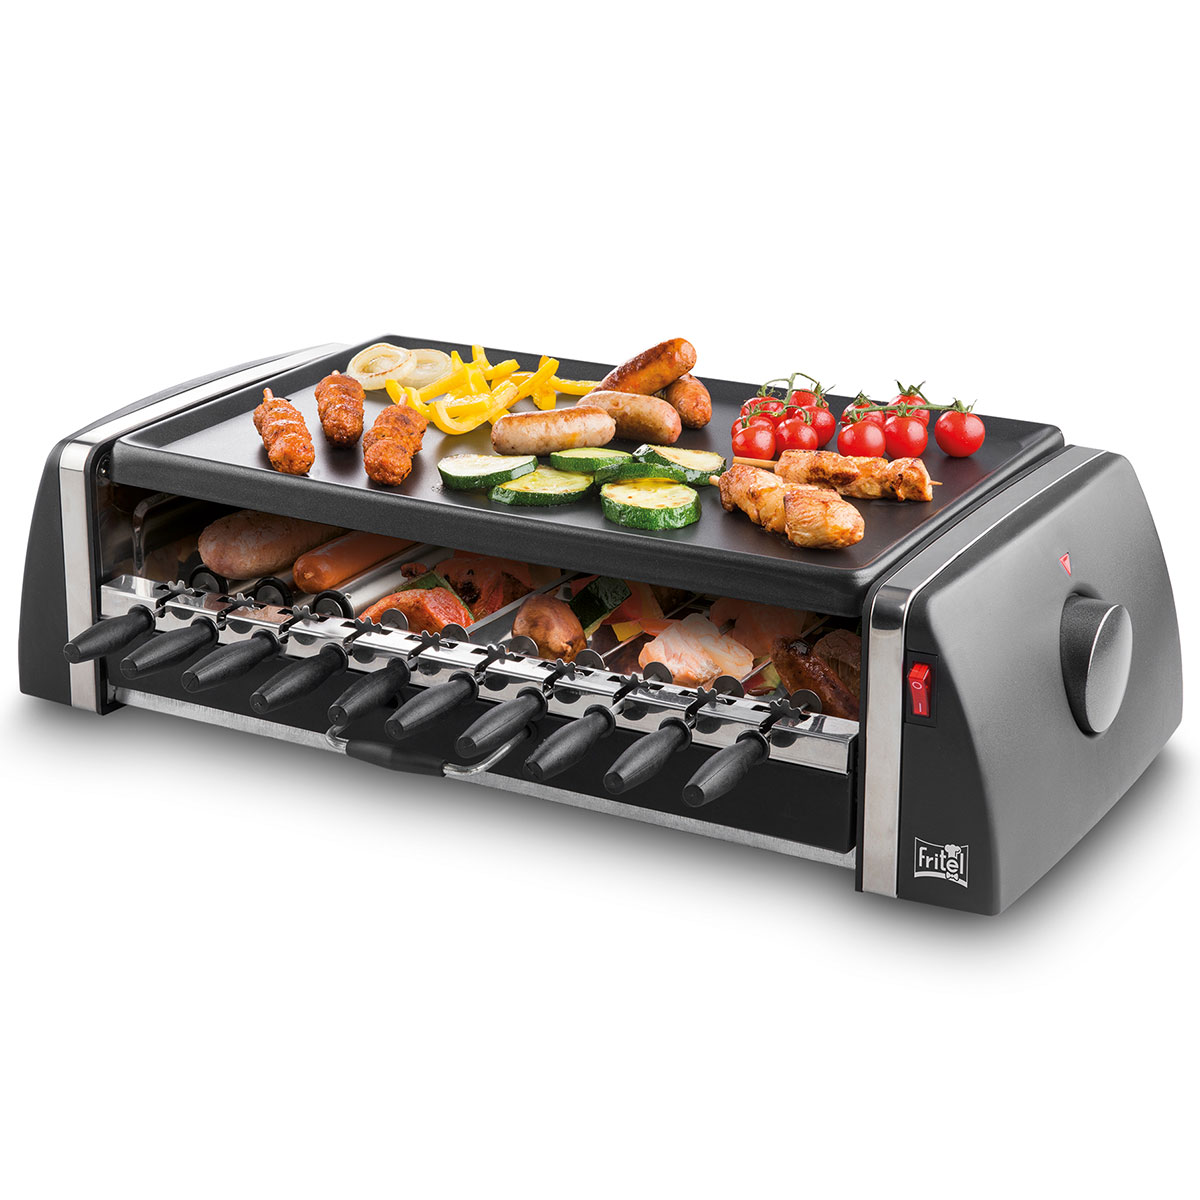 Image of   Fritel bordgrill - GT2195 Grill & Twist XL